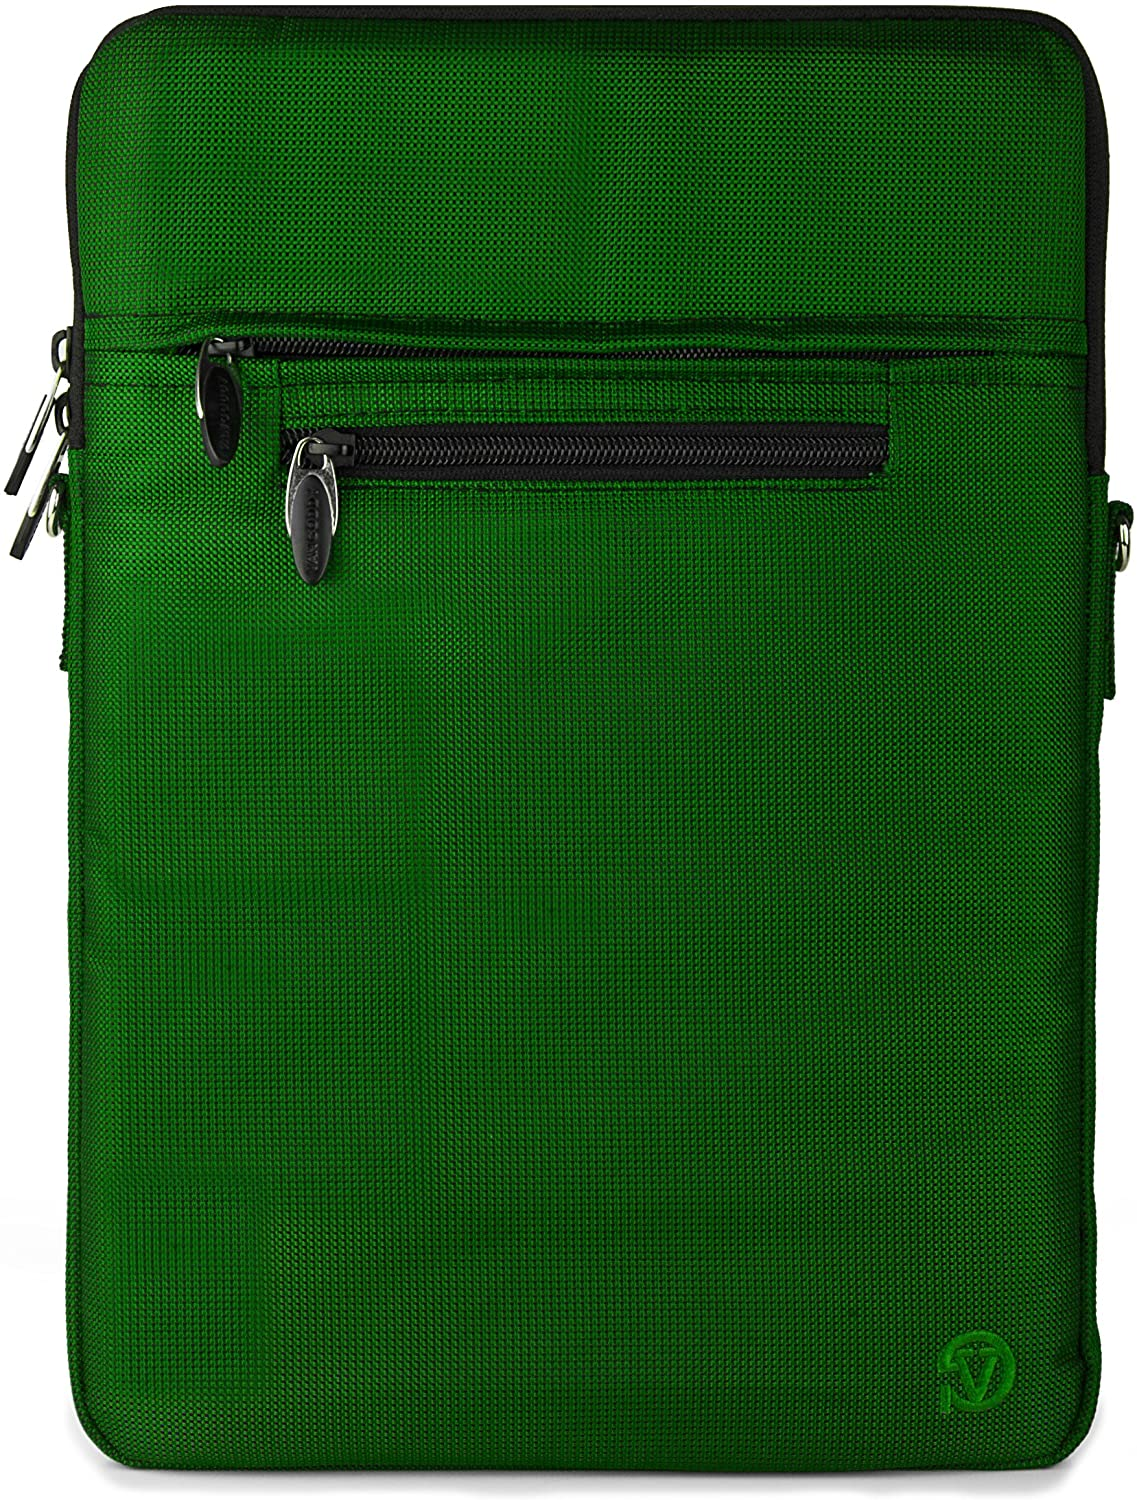 VanGoddy Hydei Shoulder Carrying Bag Sleeve for HP 11.6 inch Laptops and Tablets, Green